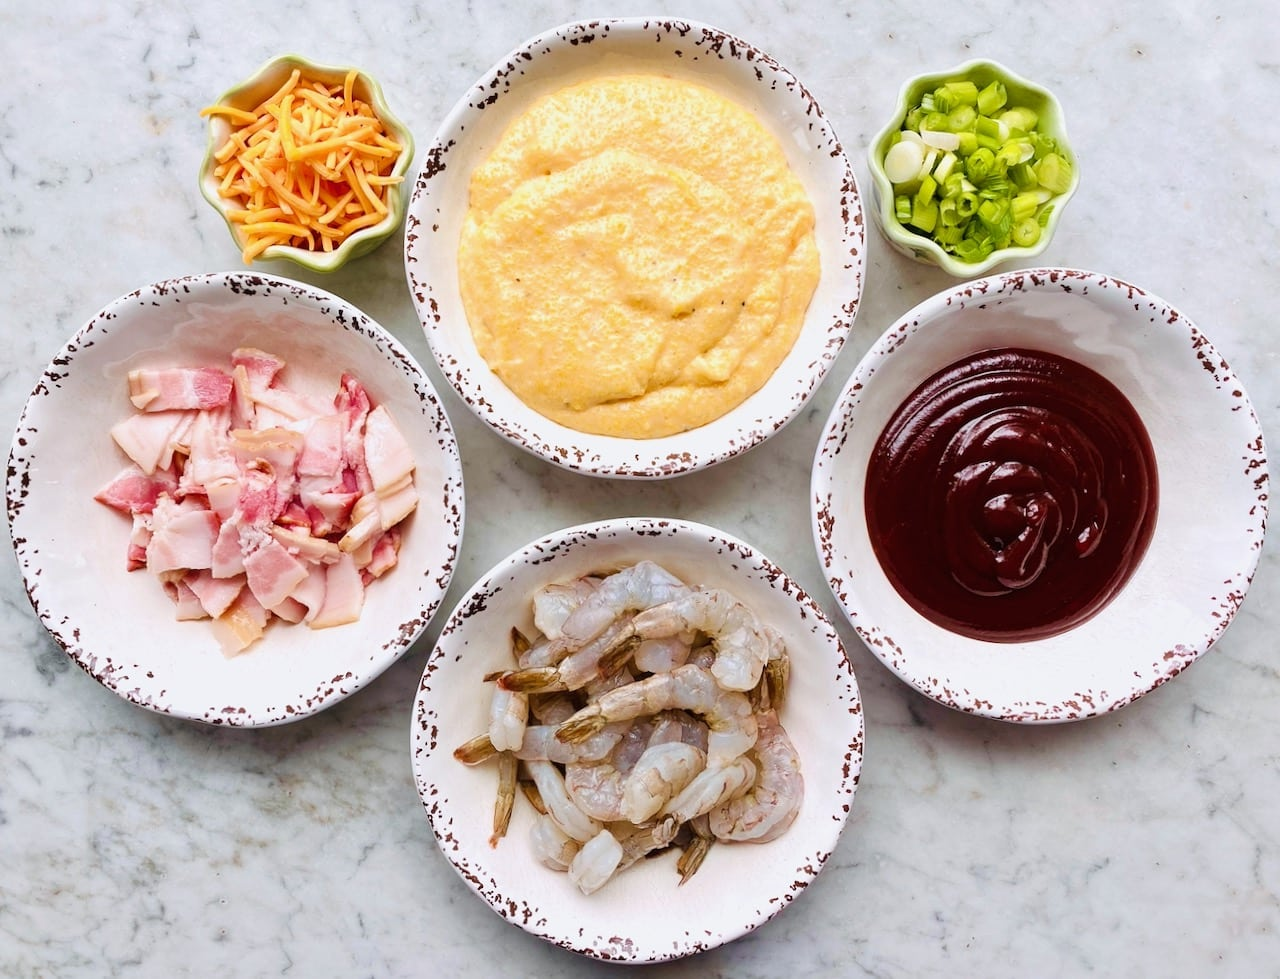 ingredients for shrimp and grits including bacon, shrimp, bbq sauce, grits, cheese and onions